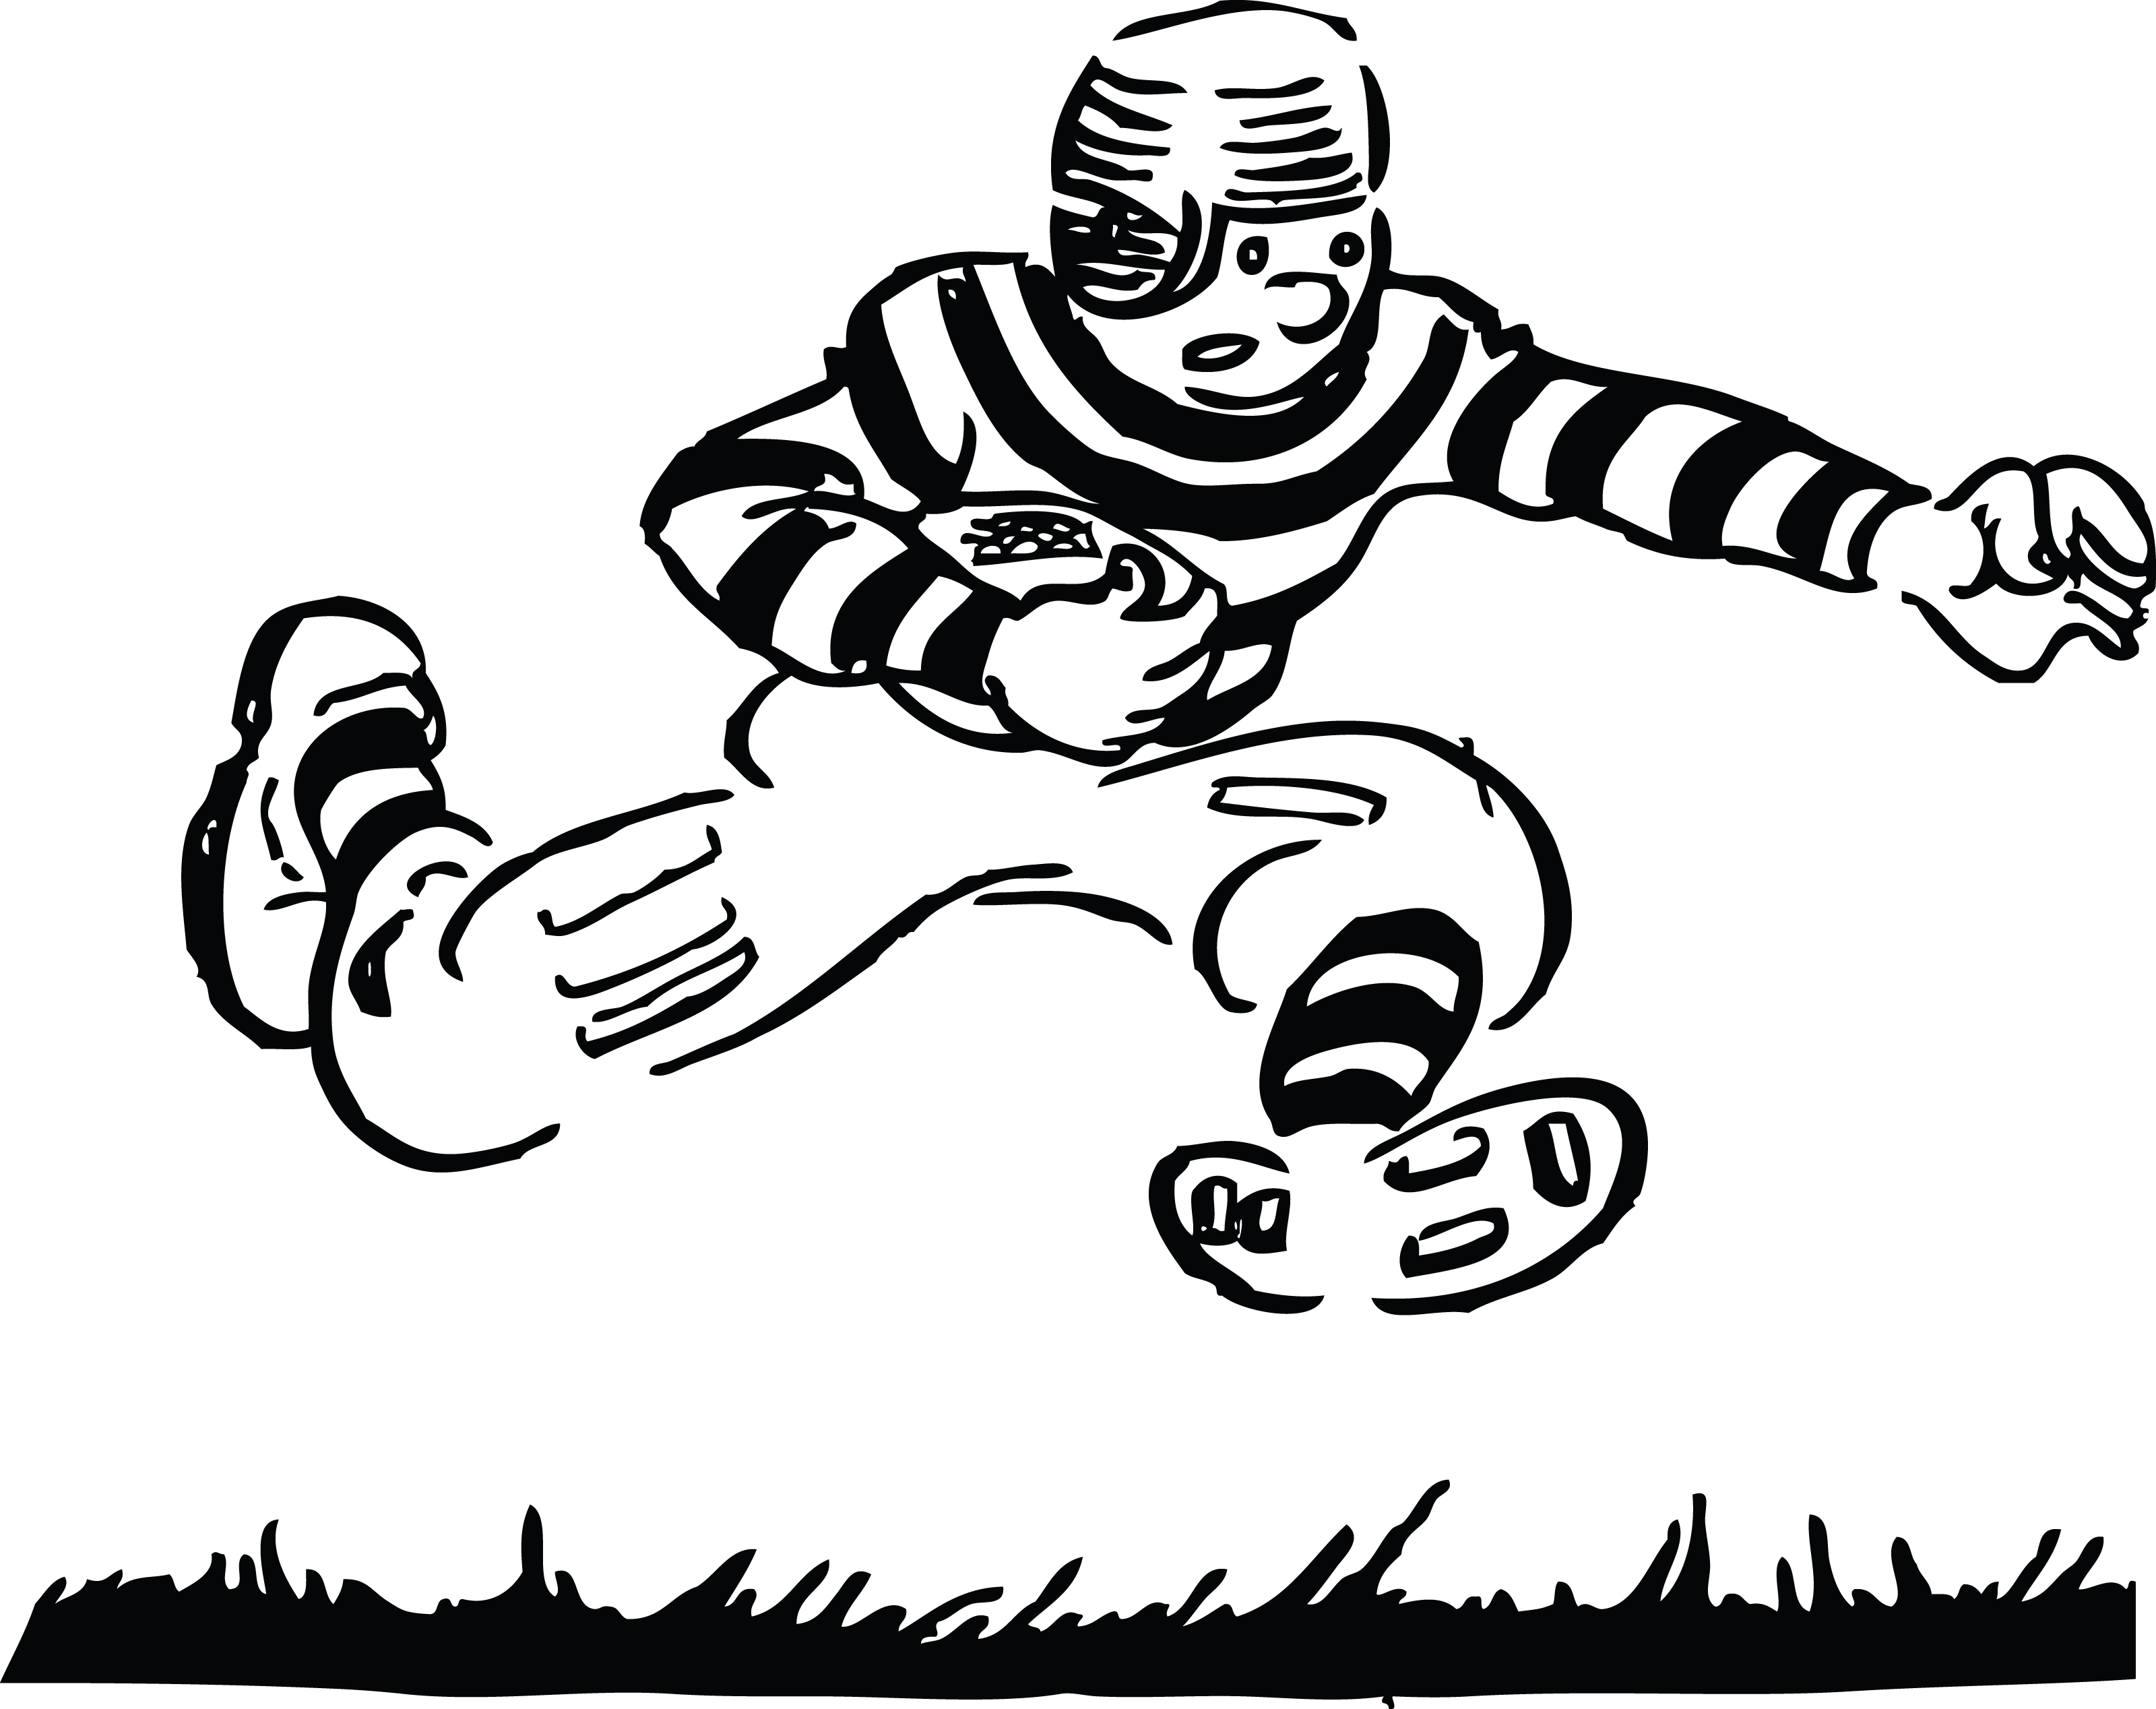 Tackle football school clipart.